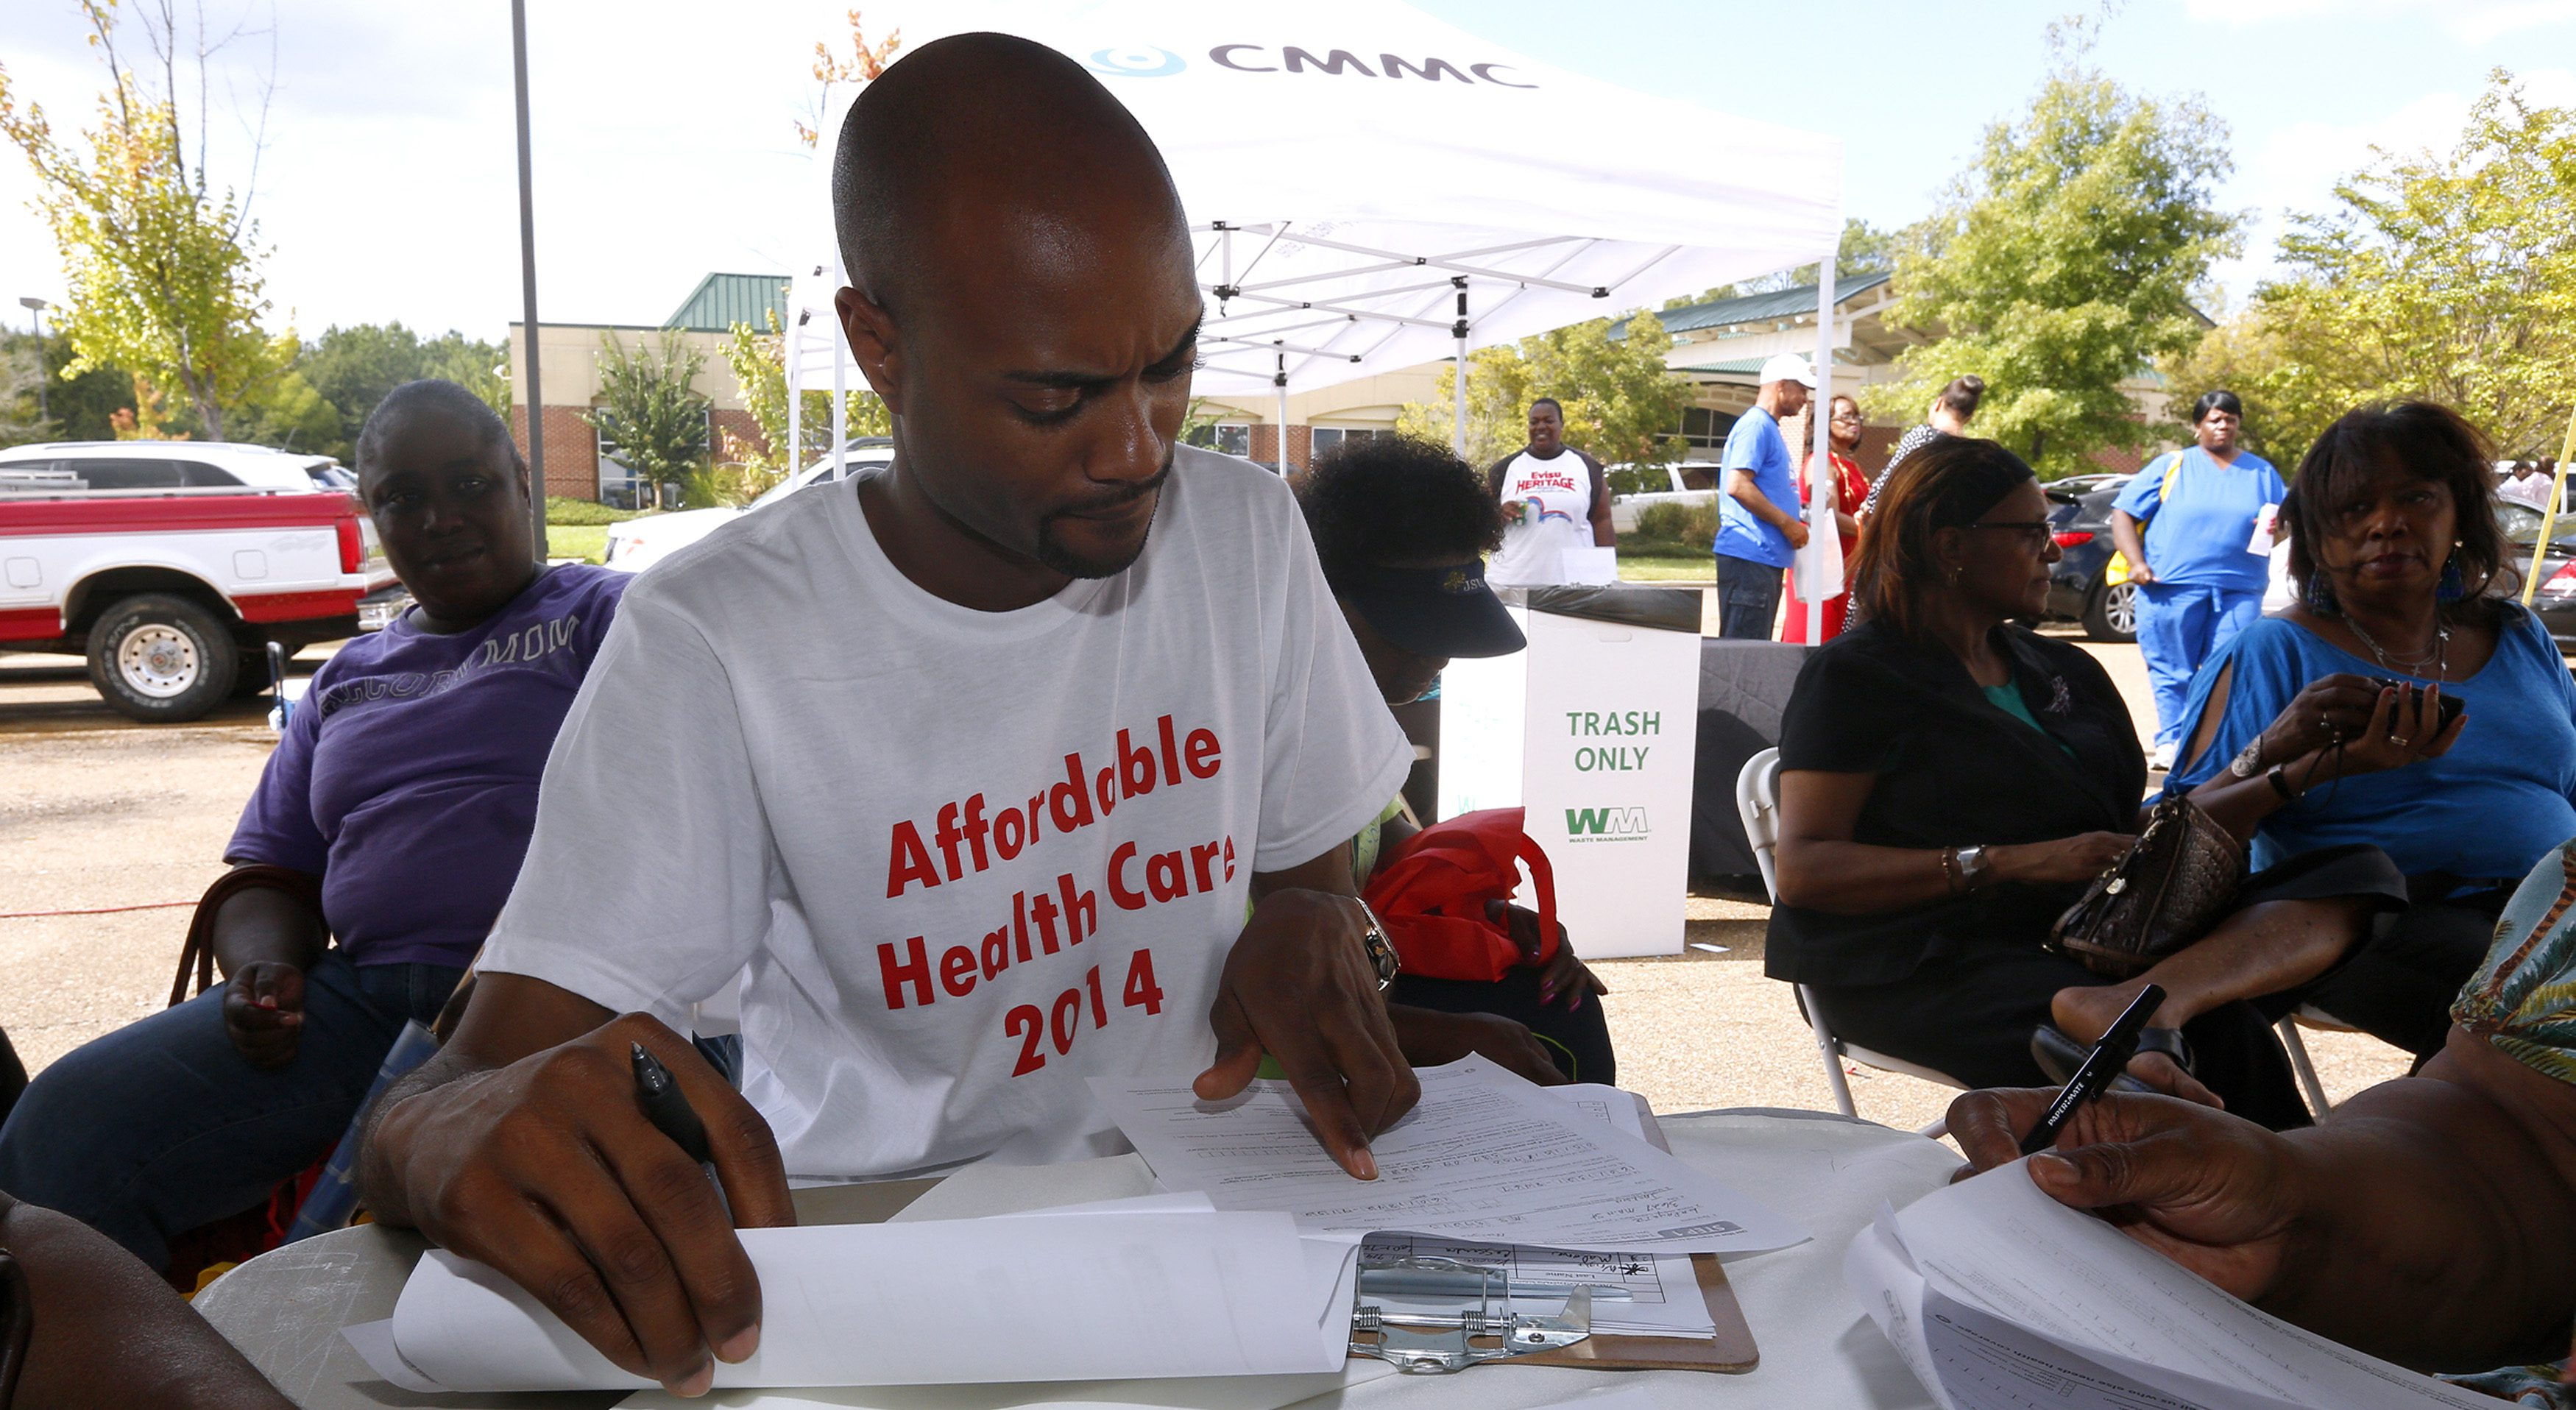 """Wilbert Jones helps local residents sign up for the Affordable Care Act, widely referred to as """"Obamacare"""", outside the Jackson-Hinds Comprehensive Health Center in Jackson, Mississippi October 4, 2013. Mississippi is one of at least 20 states that has decided not to expand Medicaid under the Affordable Care Act.   REUTERS/Jonathan Bachman  (UNITED STATES - Tags: HEALTH POLITICS BUSINESS) - RTR3FLYR"""